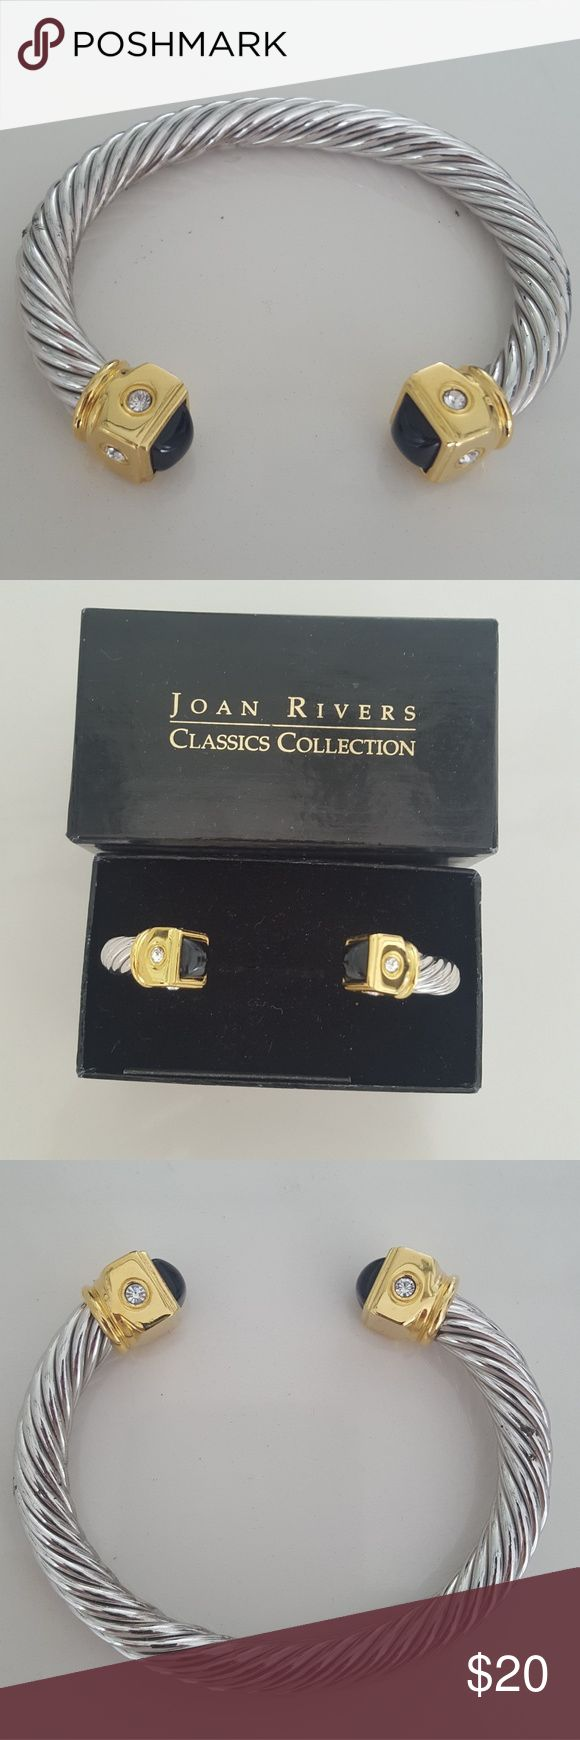 Joan Rivers Two Tone Cable Bracelet Black Stone Never worn. This is in original Joan Rivers case. Joan Rivers Jewelry